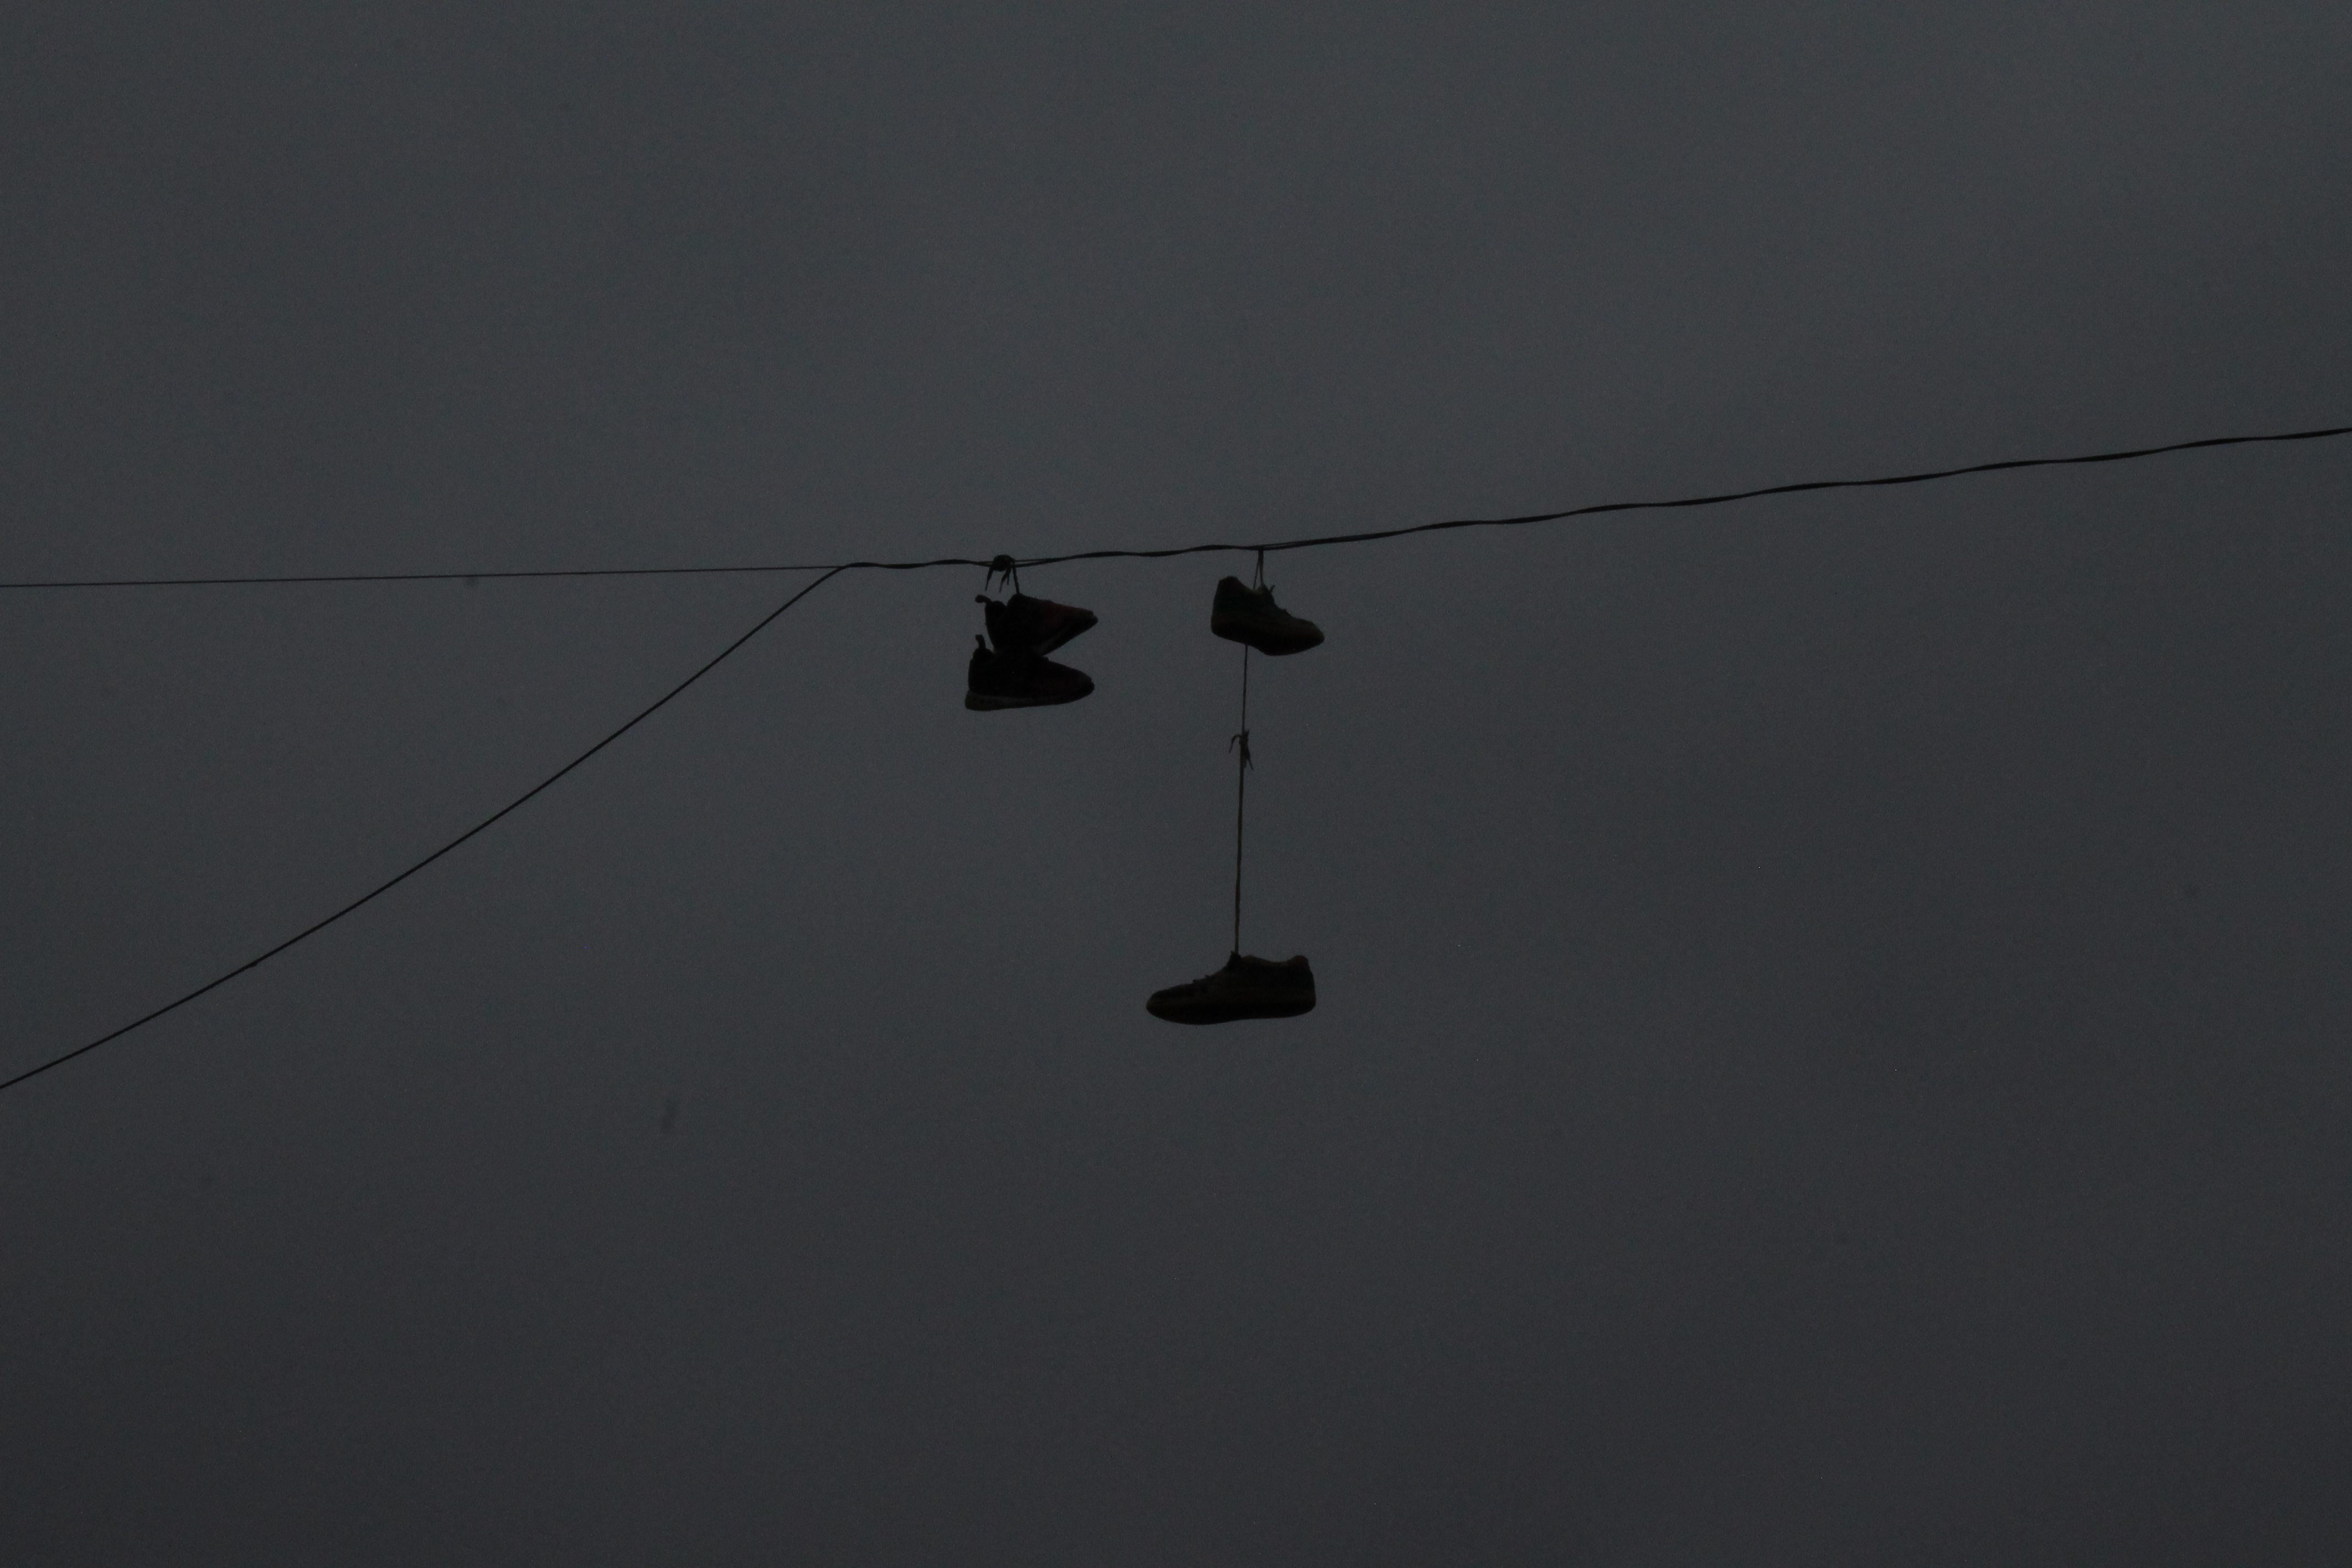 shoes on wire 1